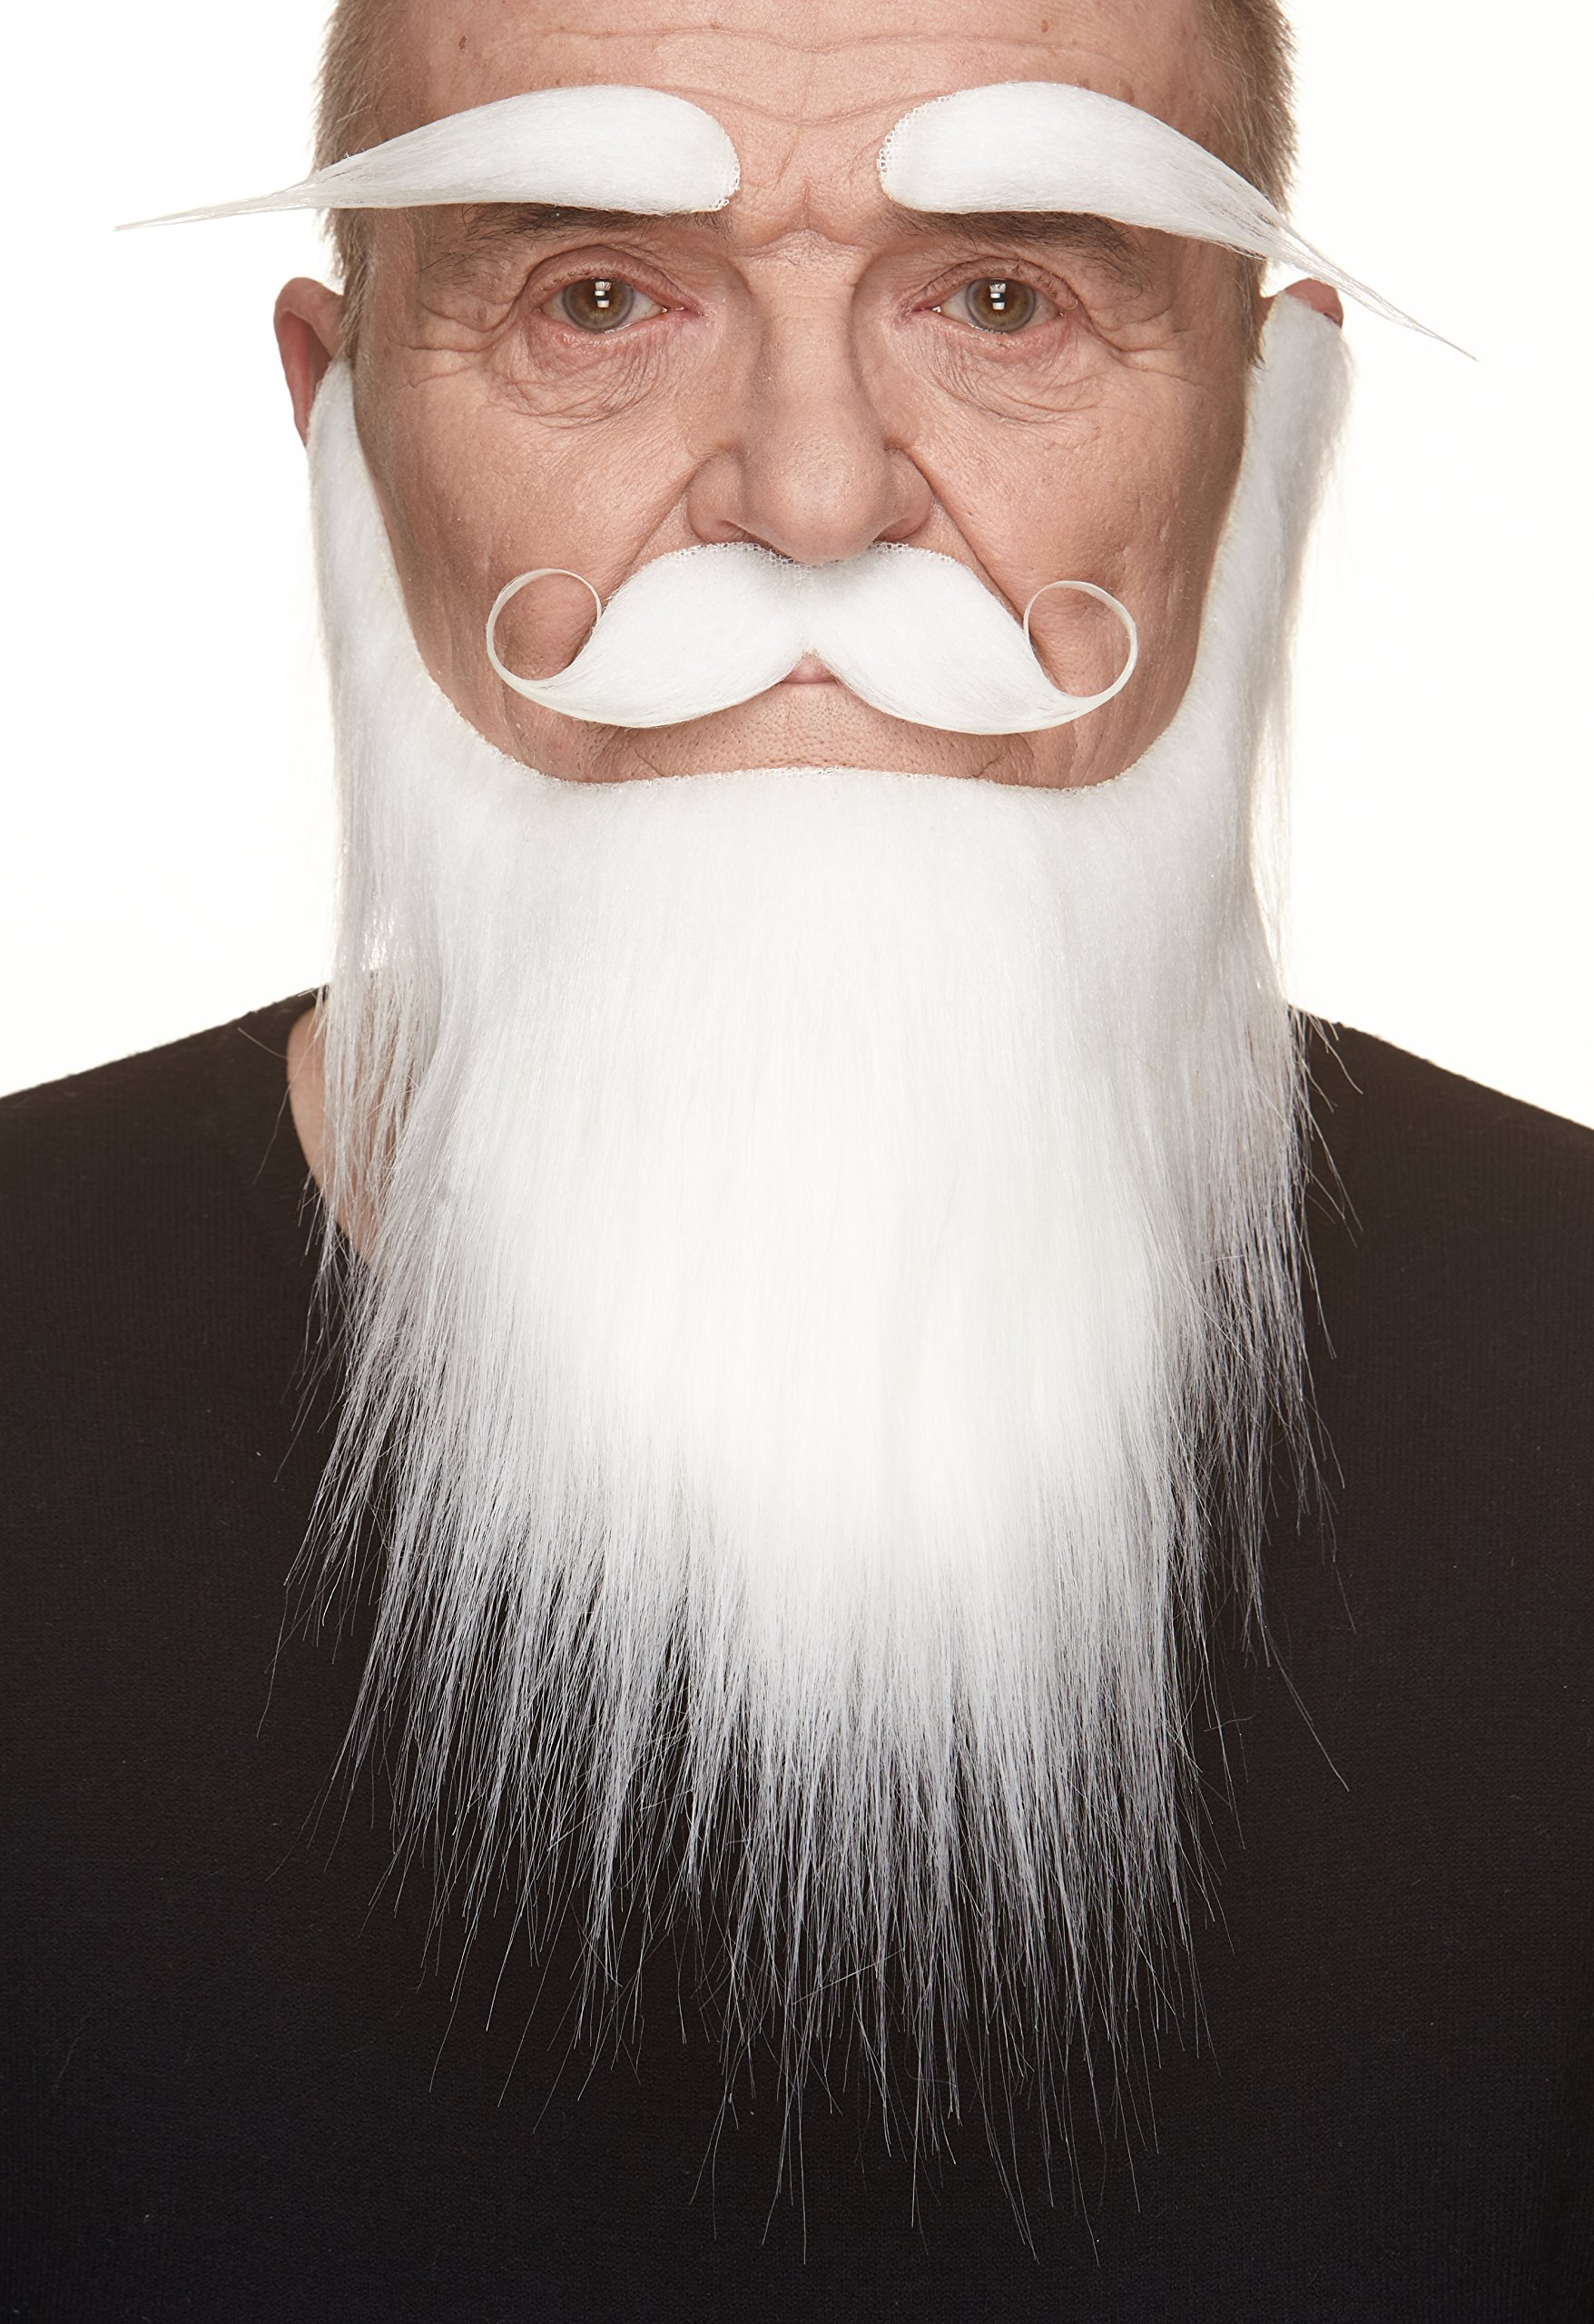 Mustaches Self Adhesive, Novelty, Fake Medieval King Beard, and Eyebrows, White Color